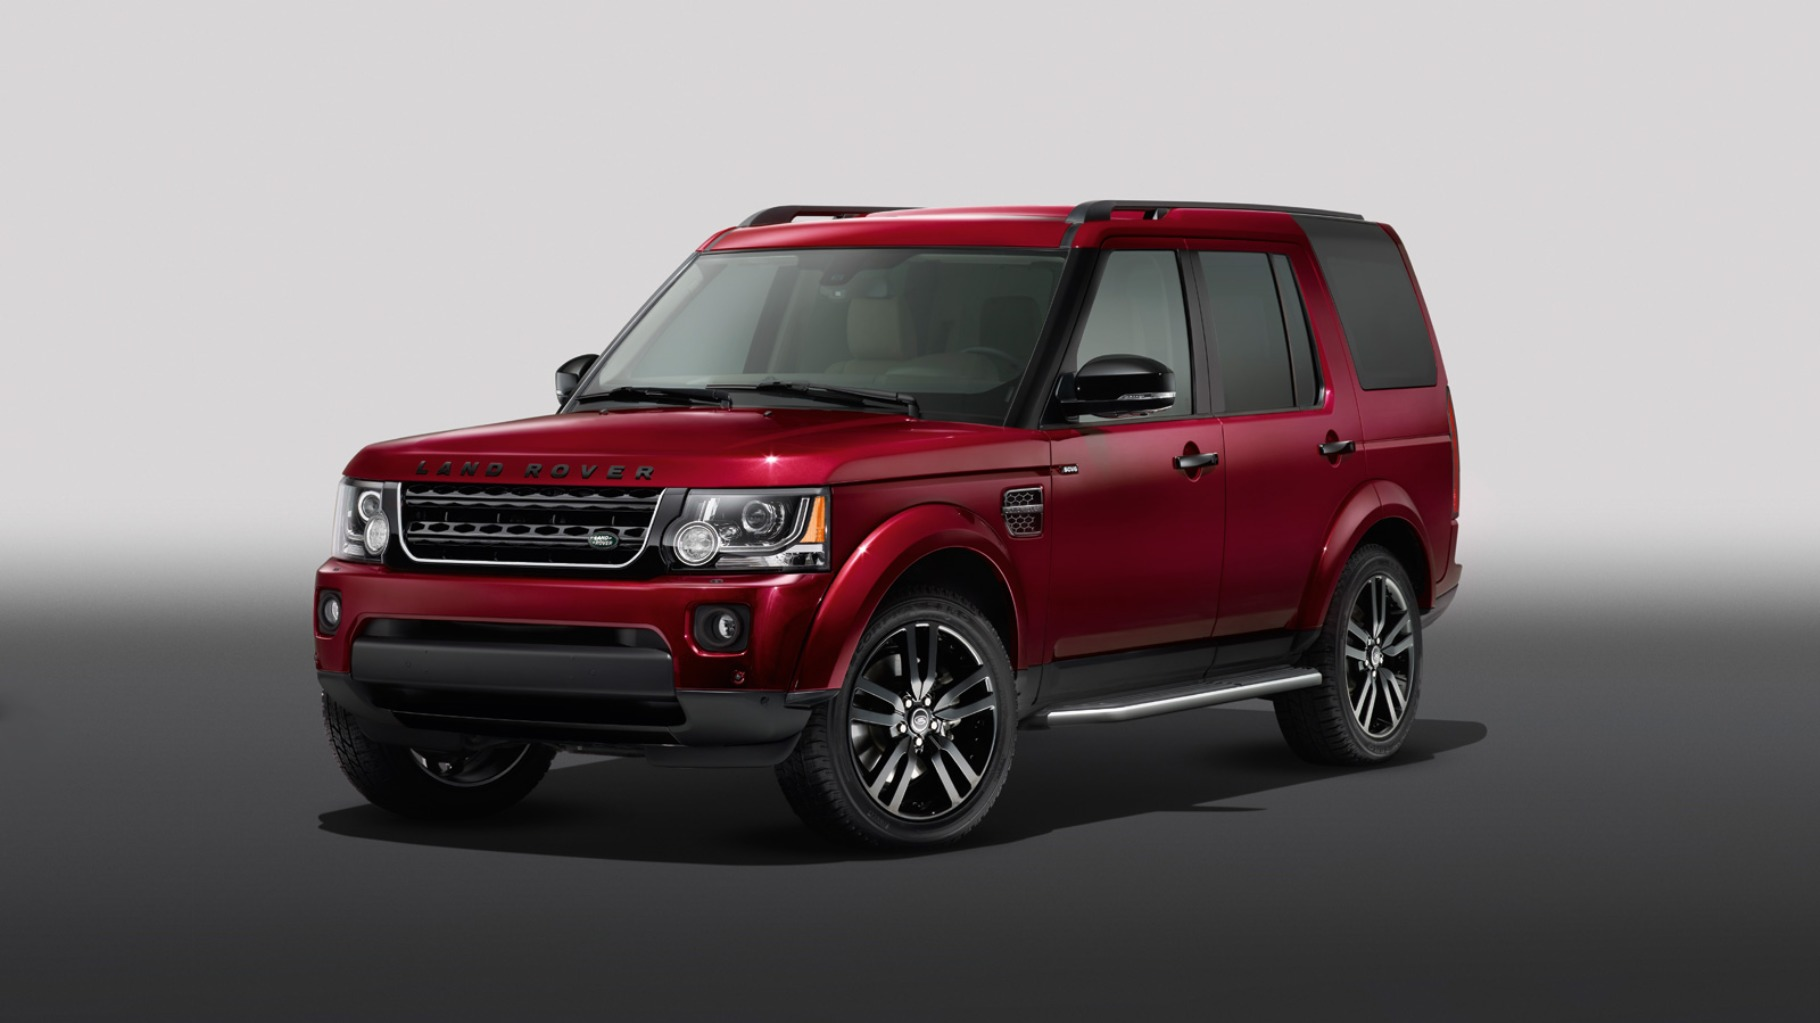 2016 Land Rover Lr4 Discovery Graphite Edition